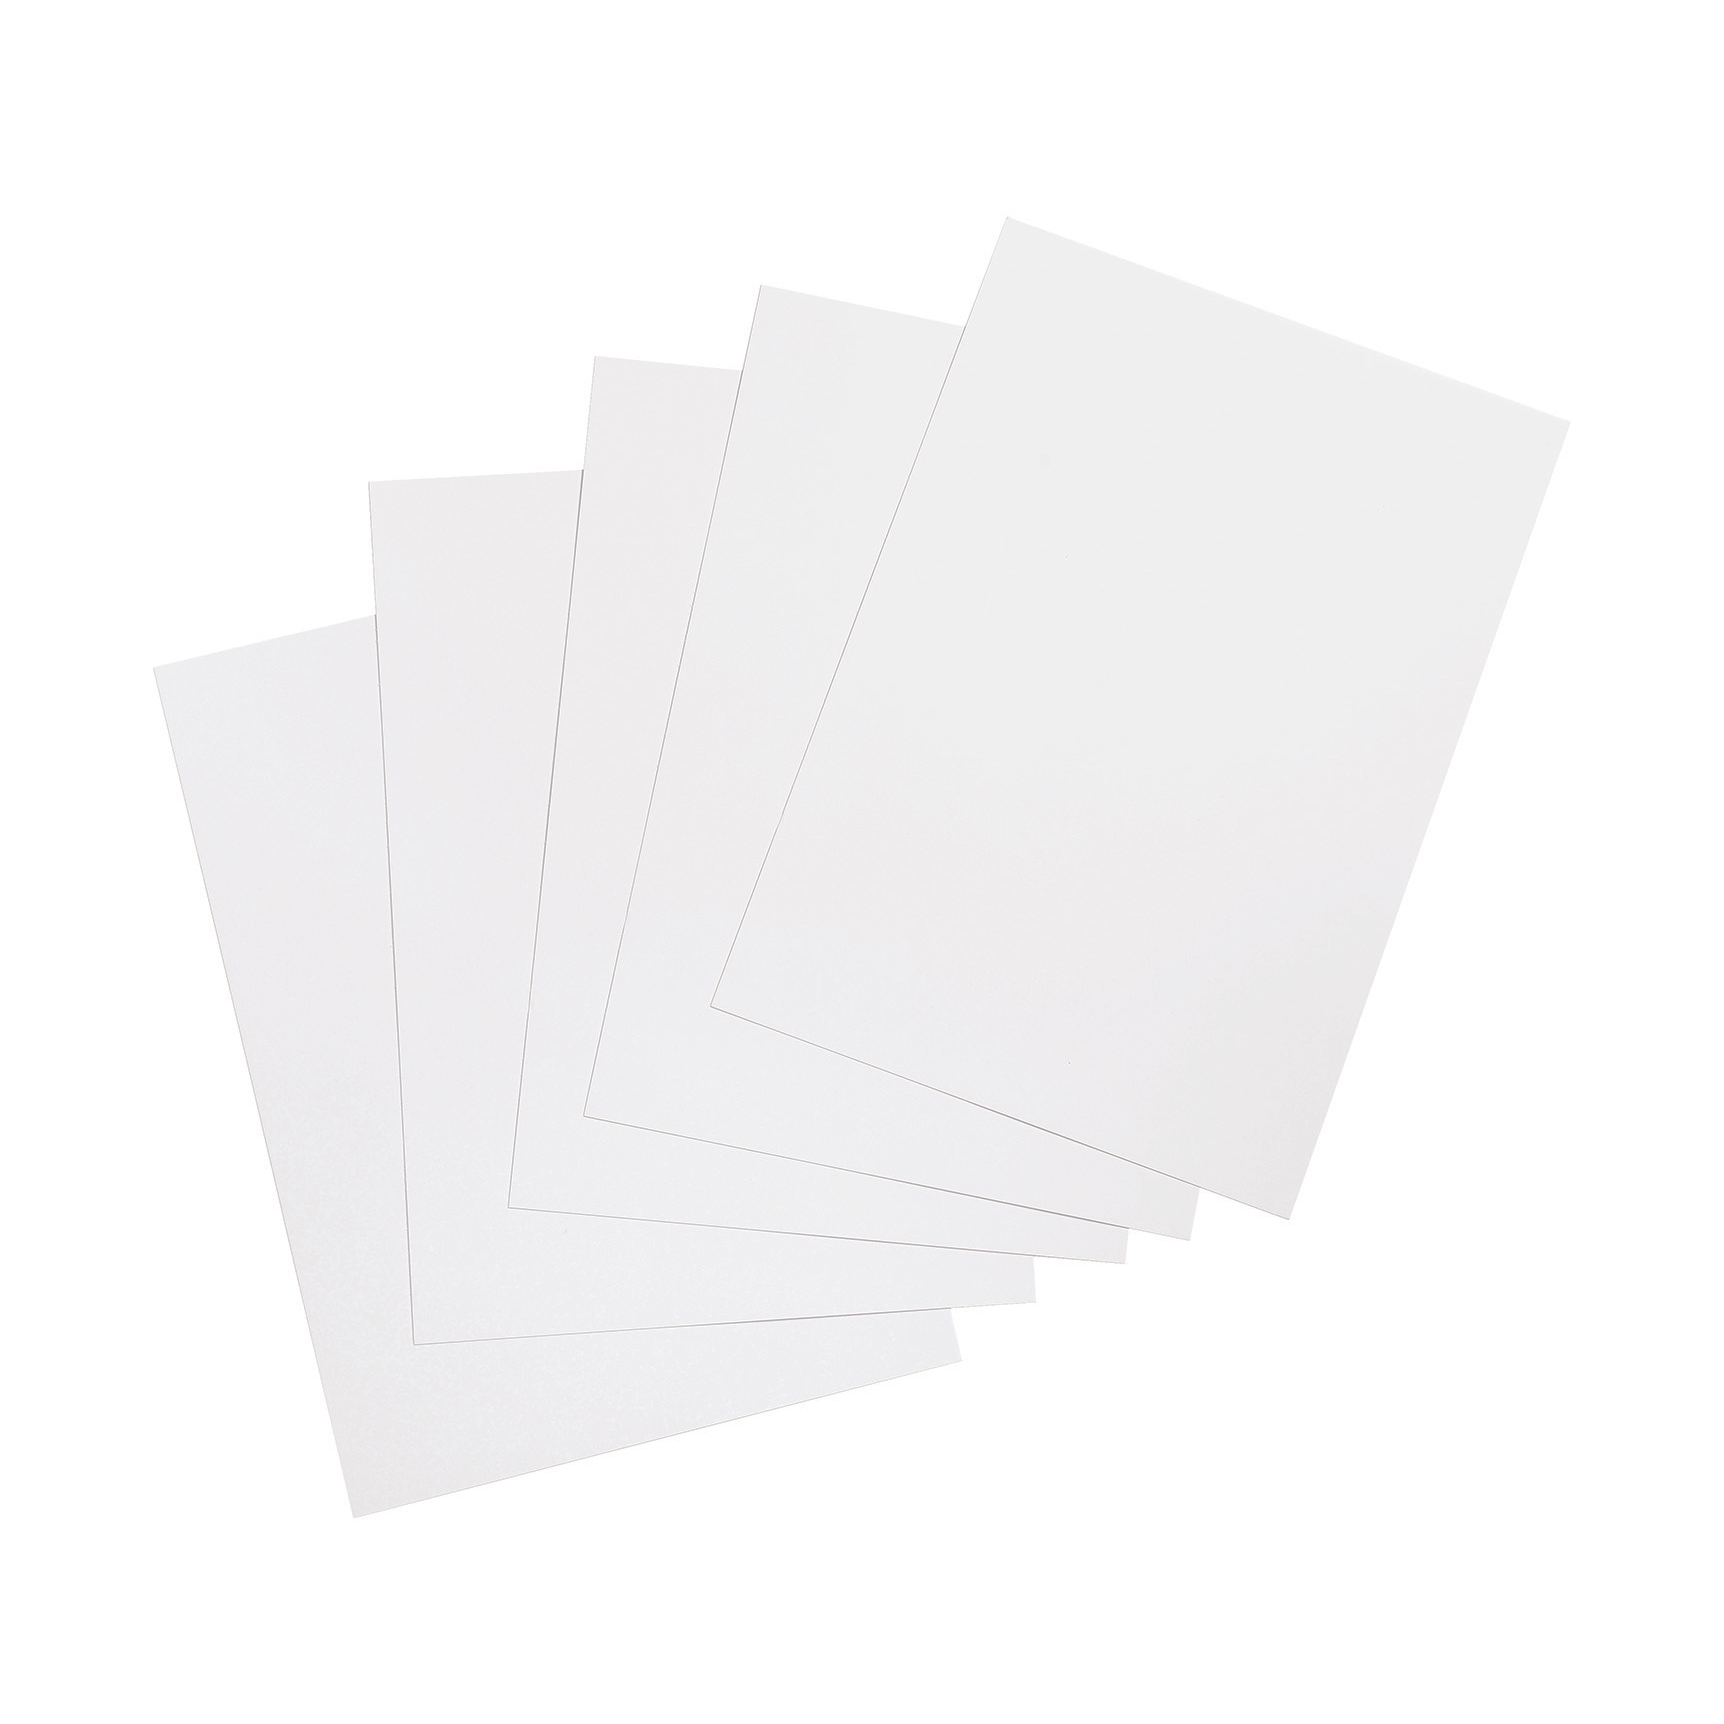 5 Star Office Binding Covers 250gsm Plain A4 Gloss White Pack 100